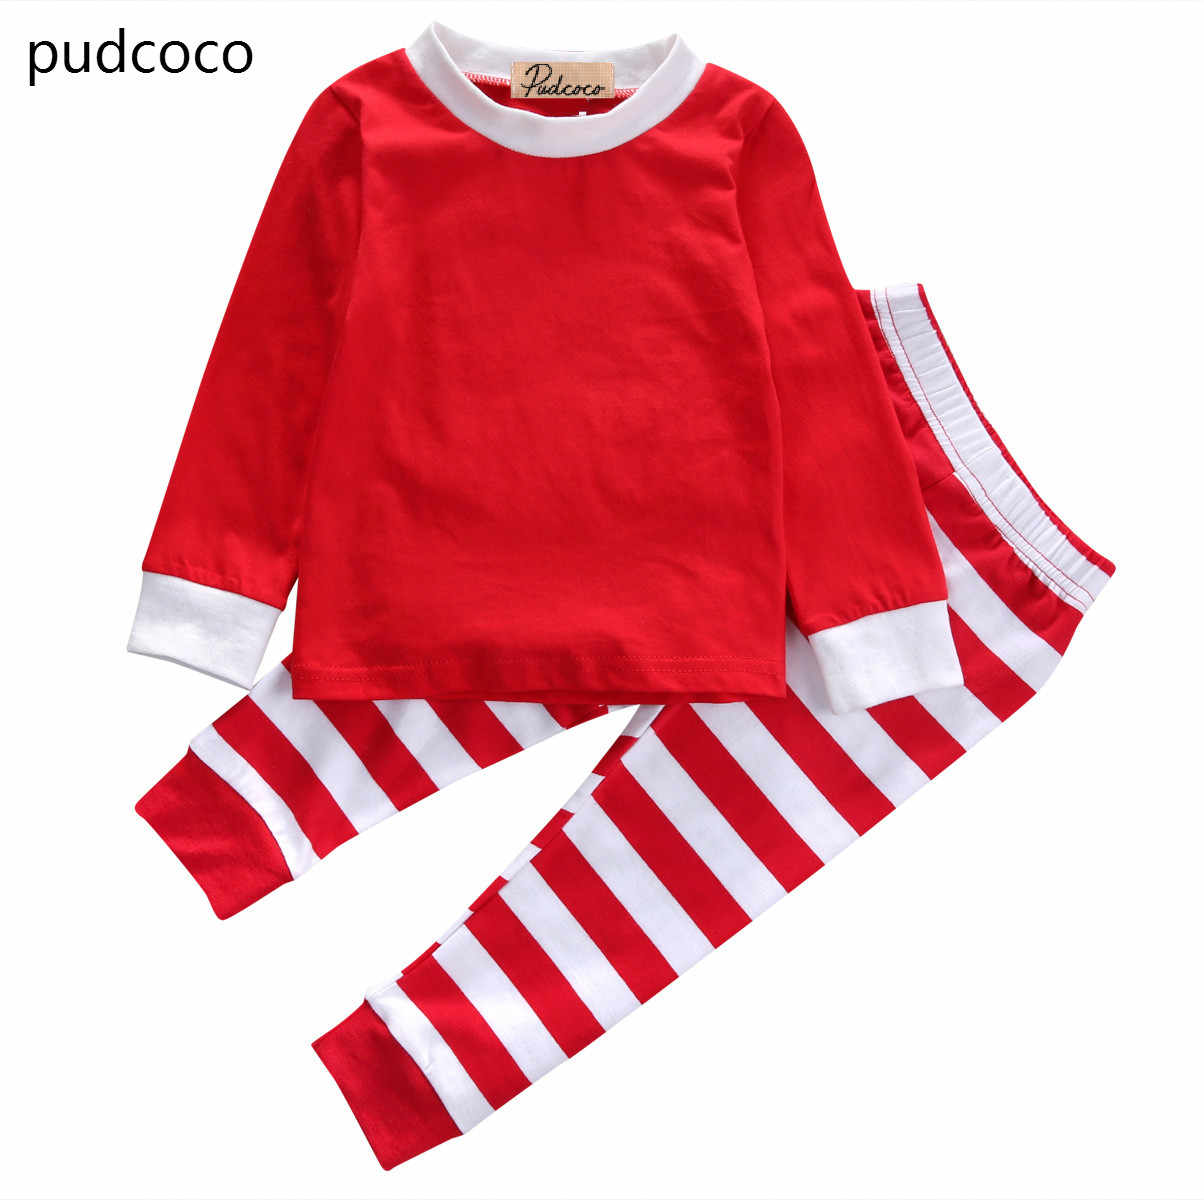 be7231f6ee50 Detail Feedback Questions about 2pcs Kids Baby Boy Girls Striped Outfits  Christmas Pajamas Sleepwear Set Red Green Cotton Tops Long Pants Xmas  Clothes Set ...